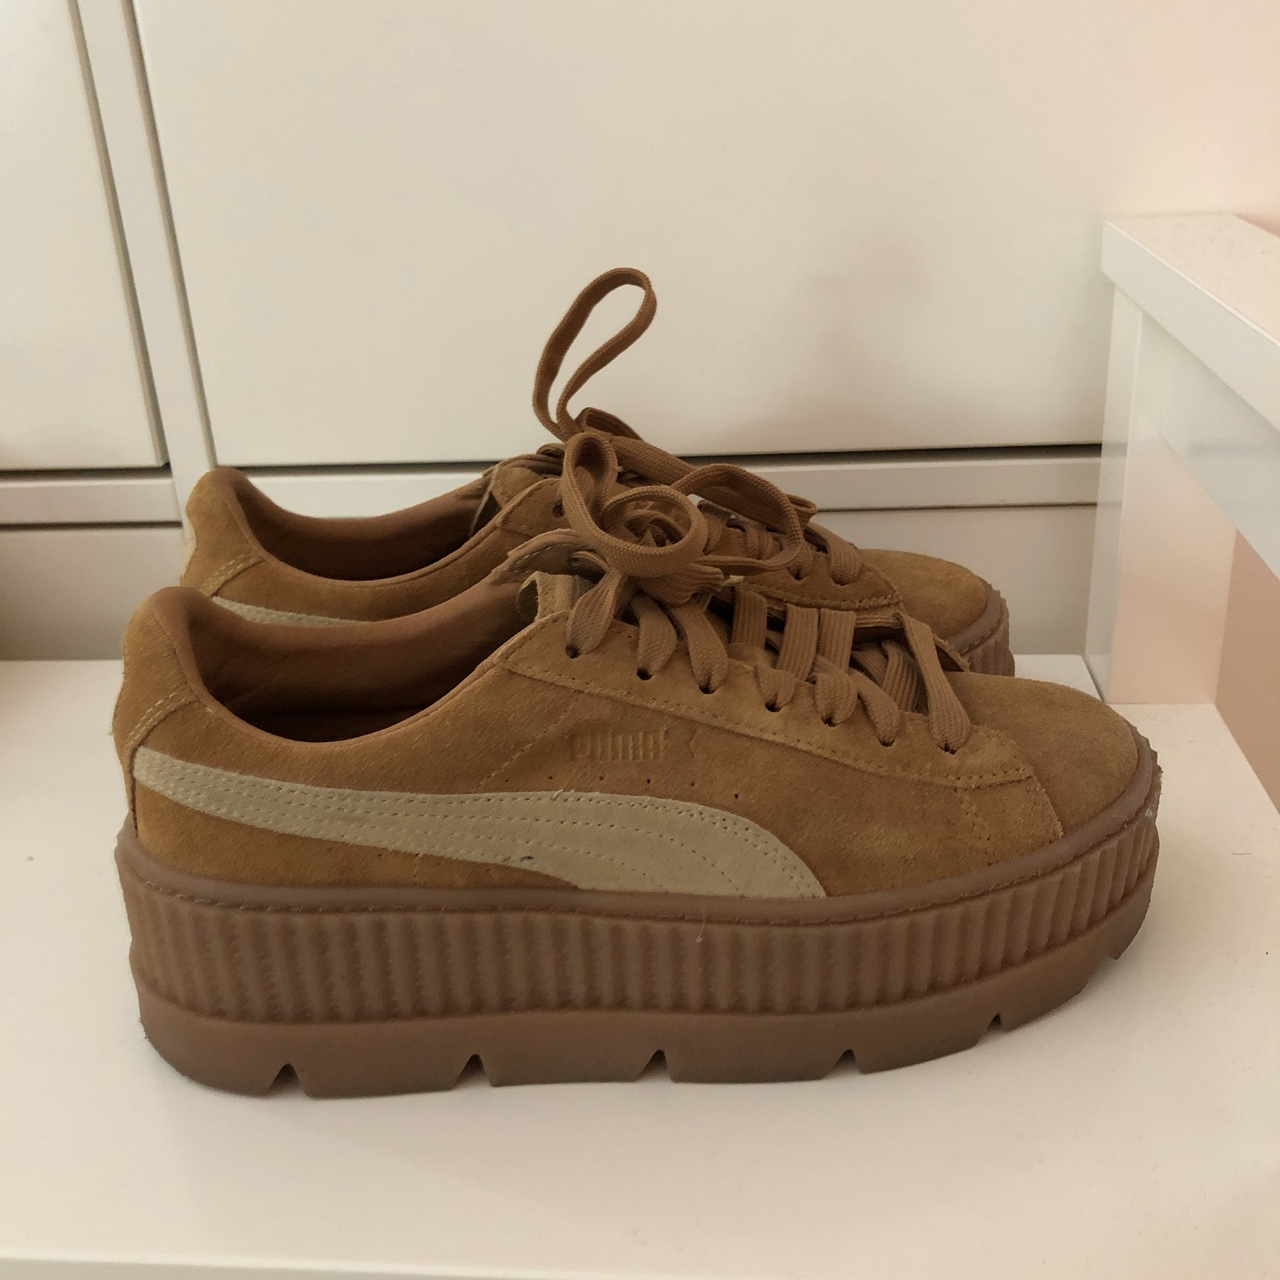 competitive price edf79 656fe Fenty puma creepers (tan color) Very lightly worn... - Depop